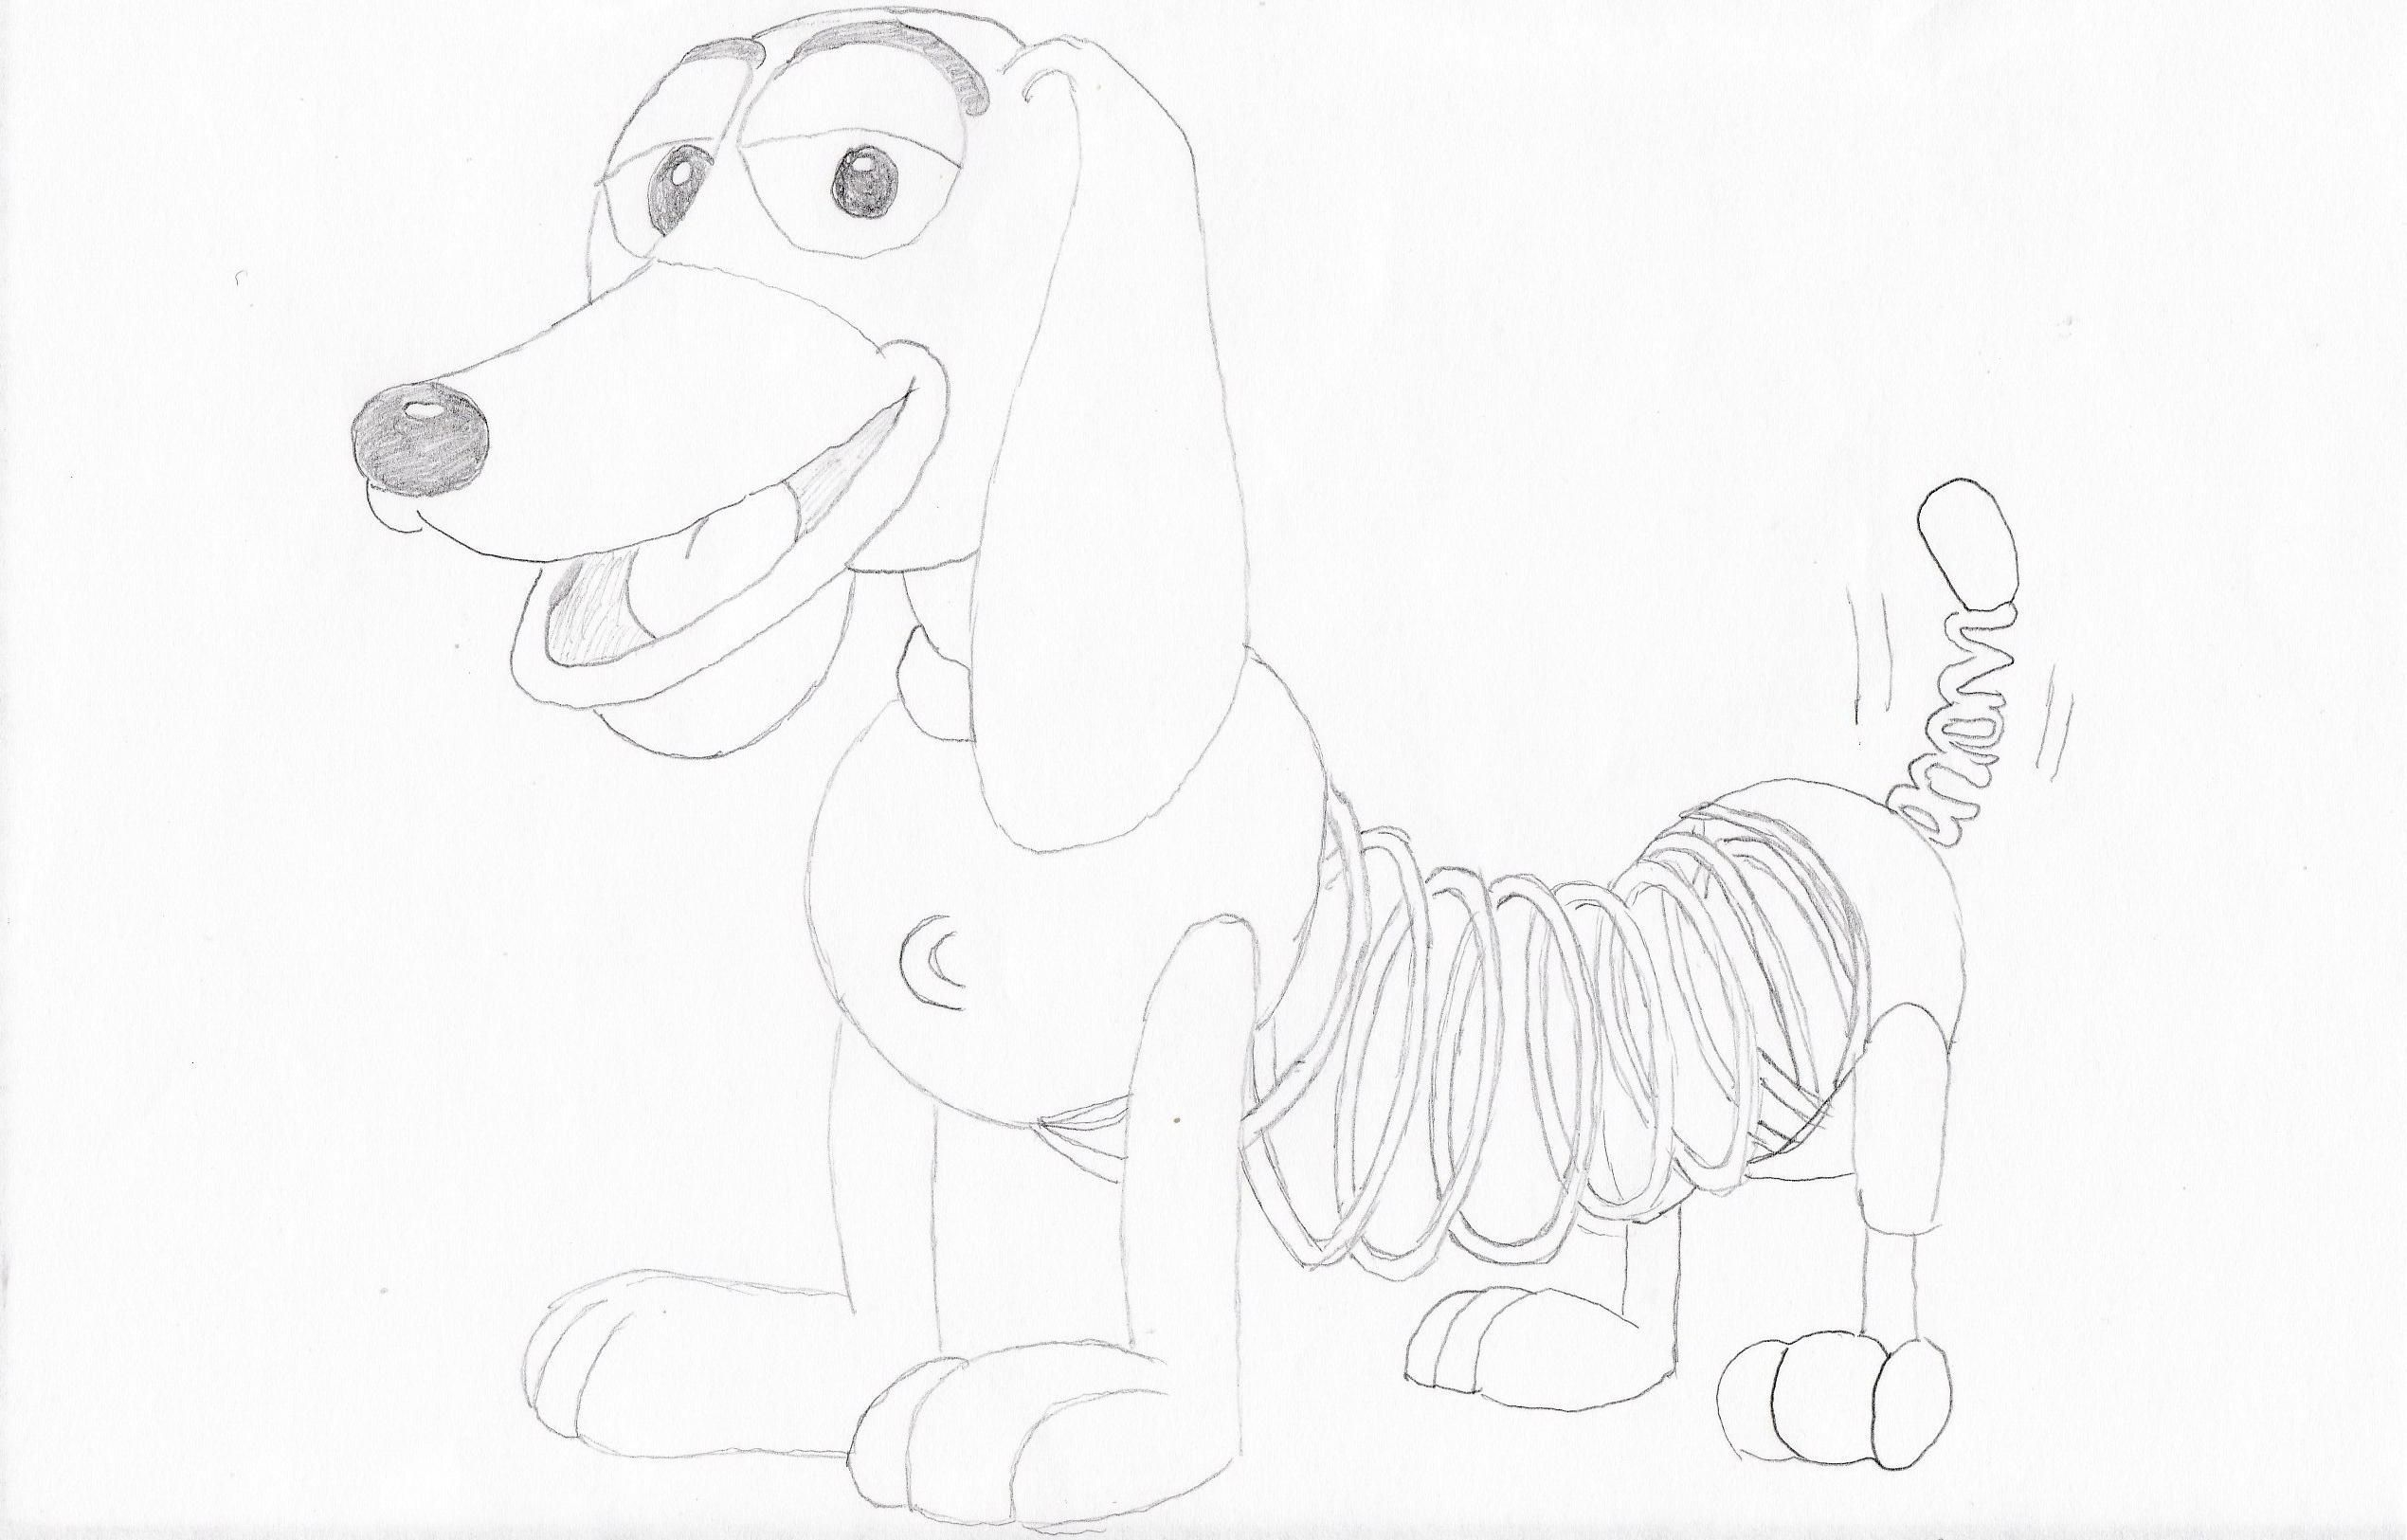 Slinky Dog Toy Story Drawings Sketches Artwork